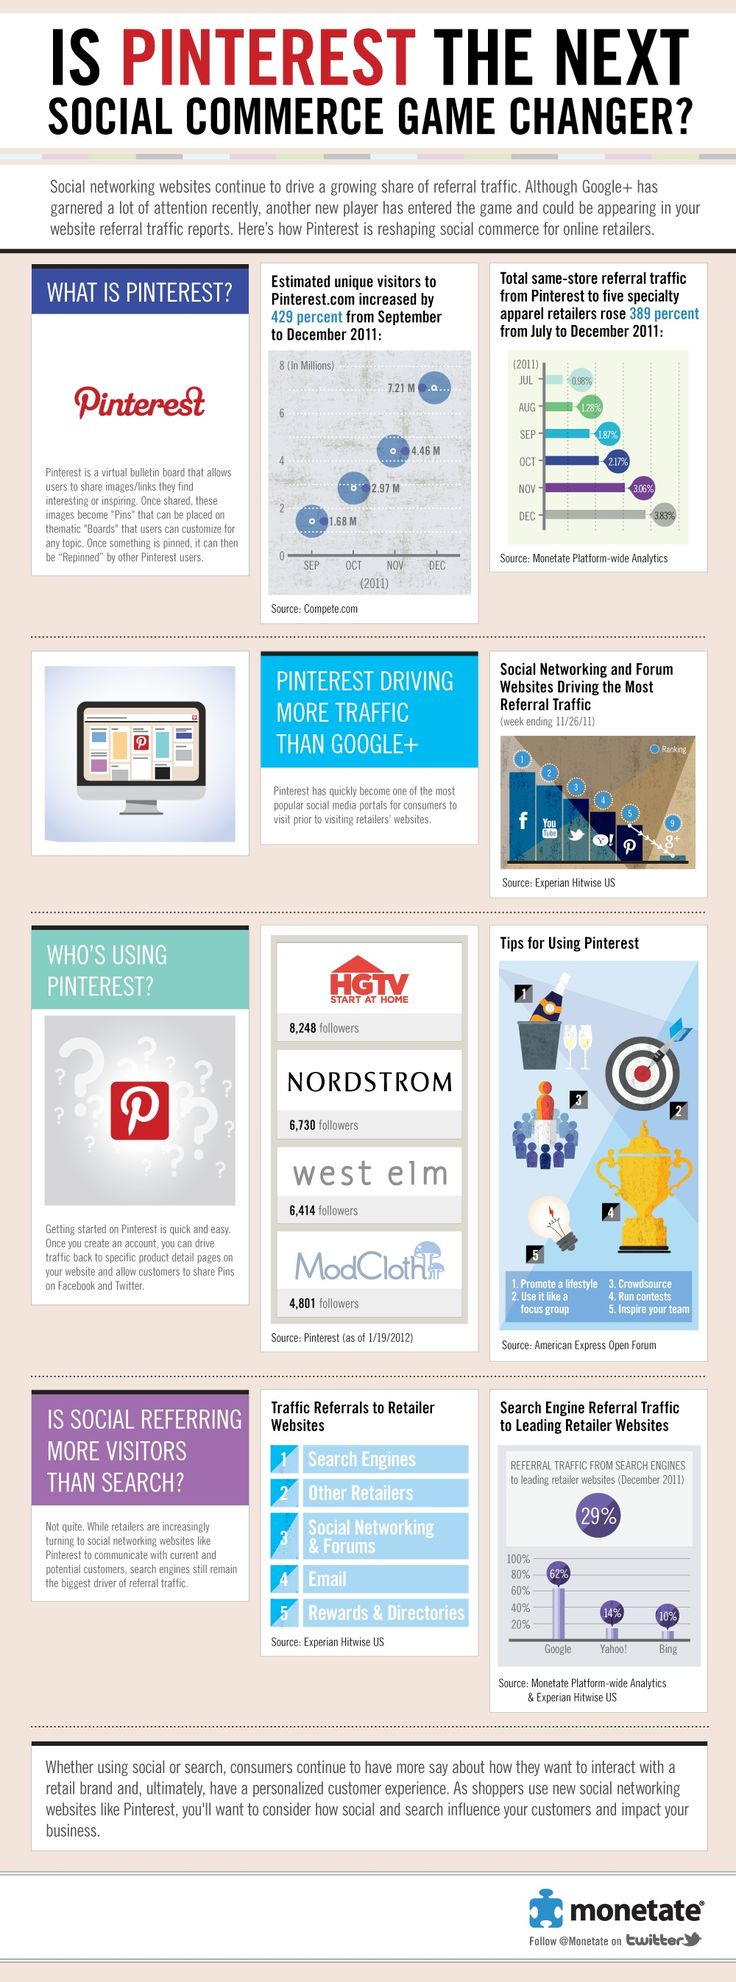 Interesting facts on Pinterest. Could be a great way to create a modal dashboard for information